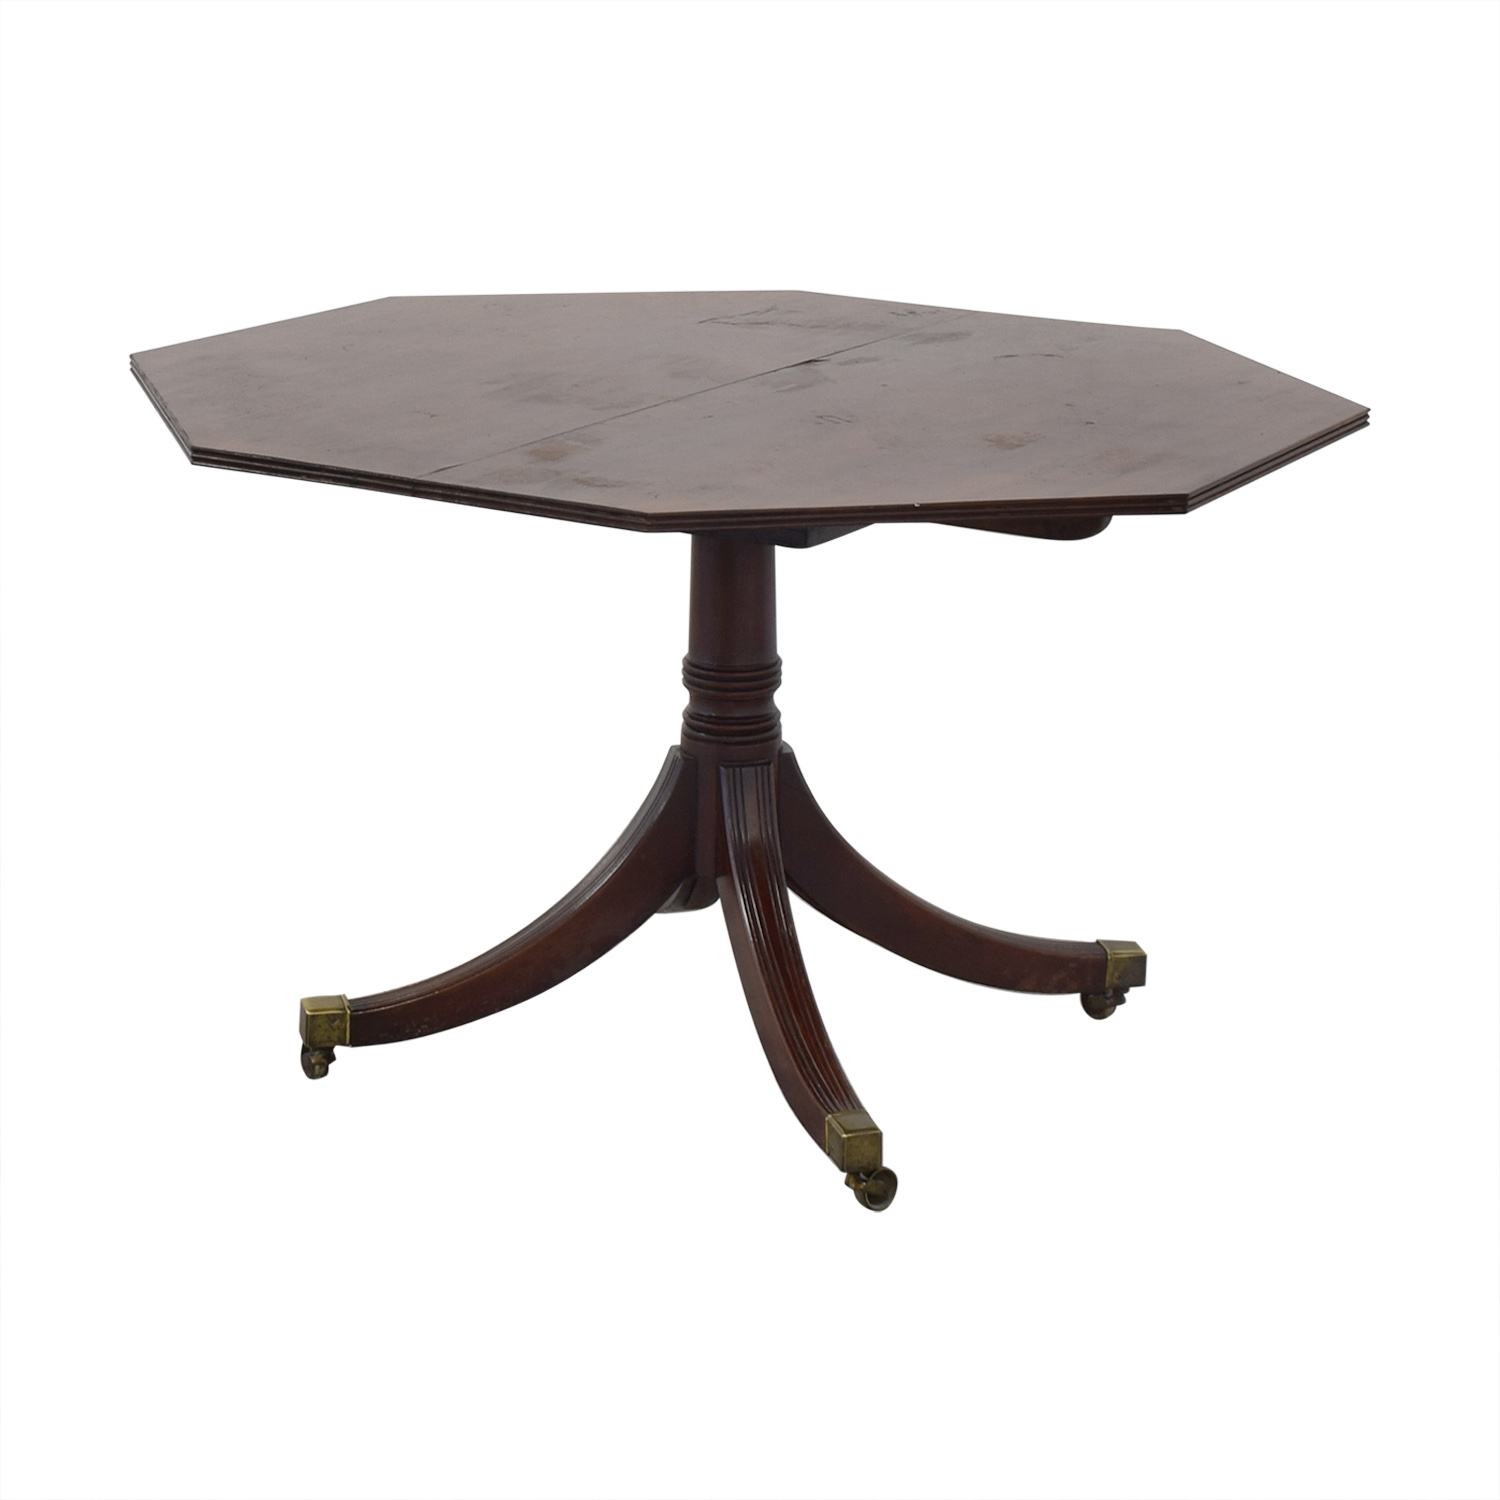 Round Vintage Mahogany Wooden Dining Room Table on sale